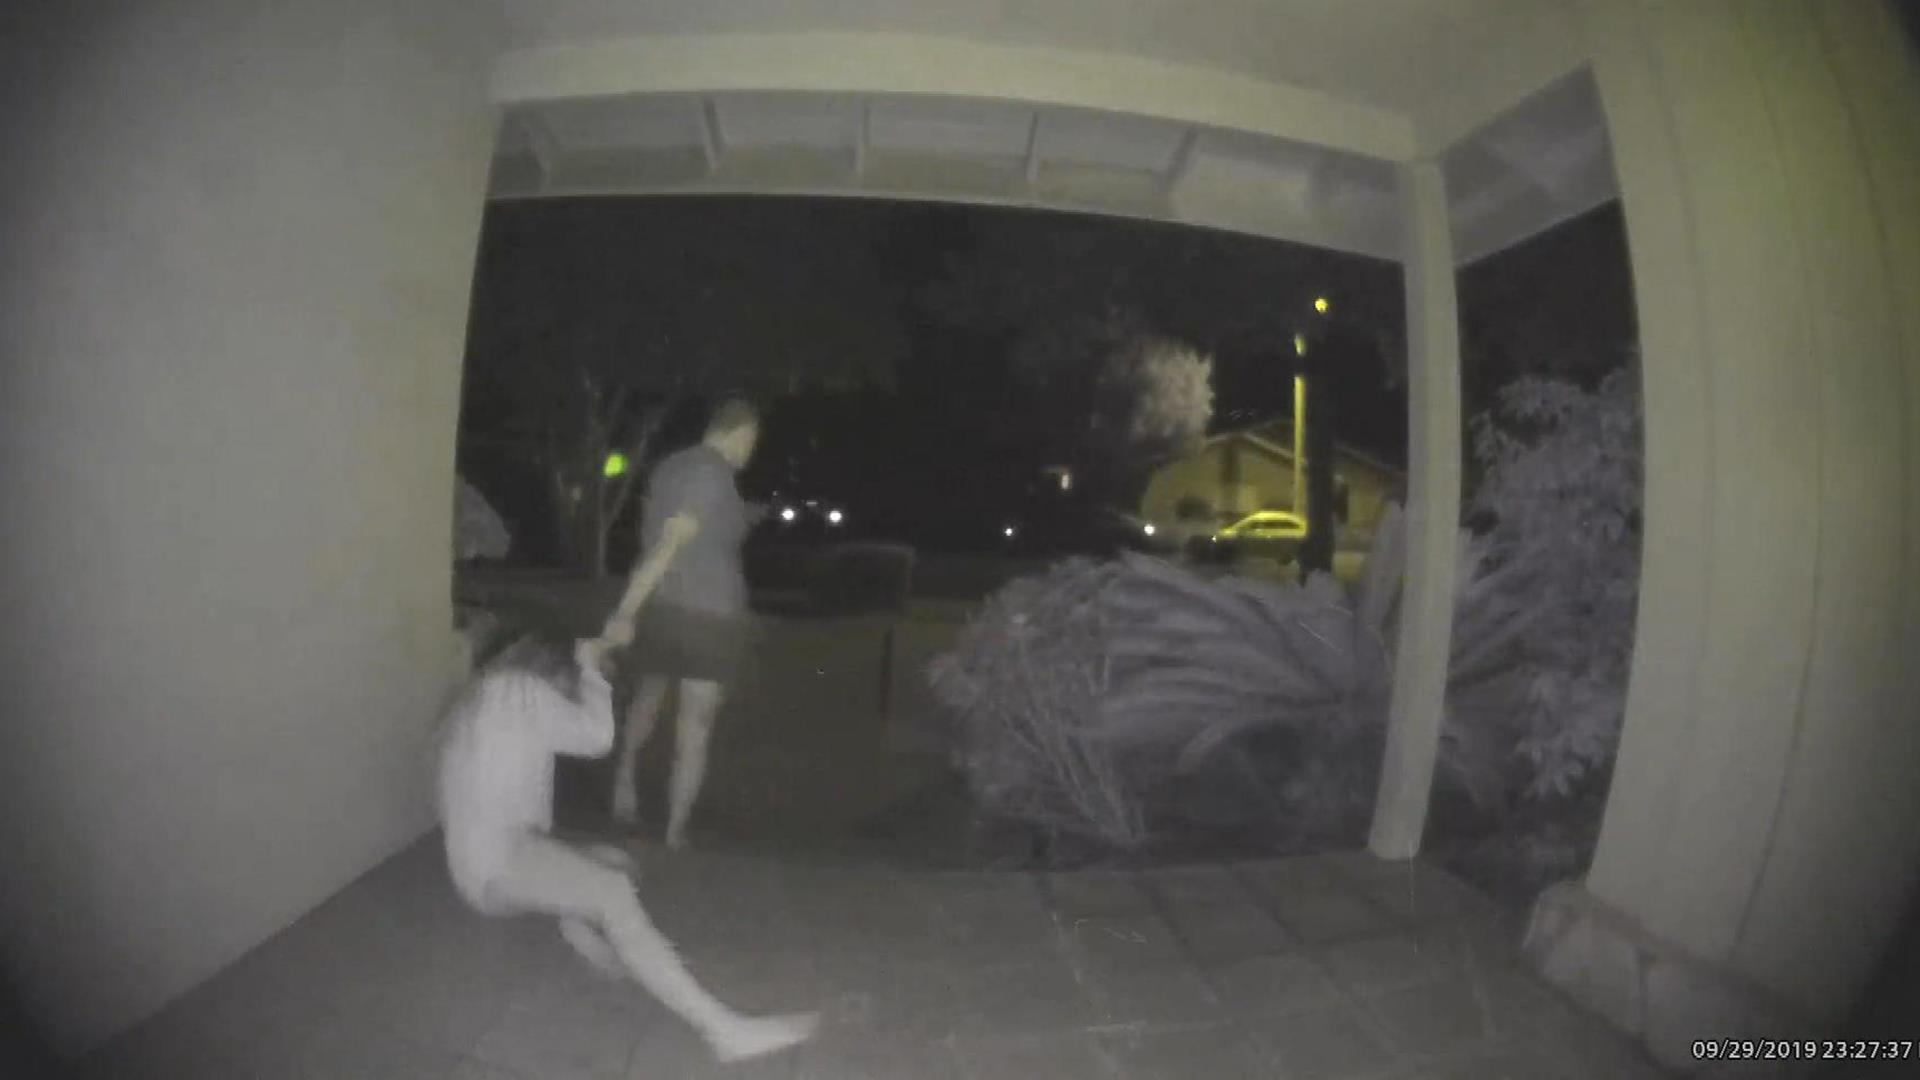 Doorbell camera appears to show man brutally assaulting woman in California